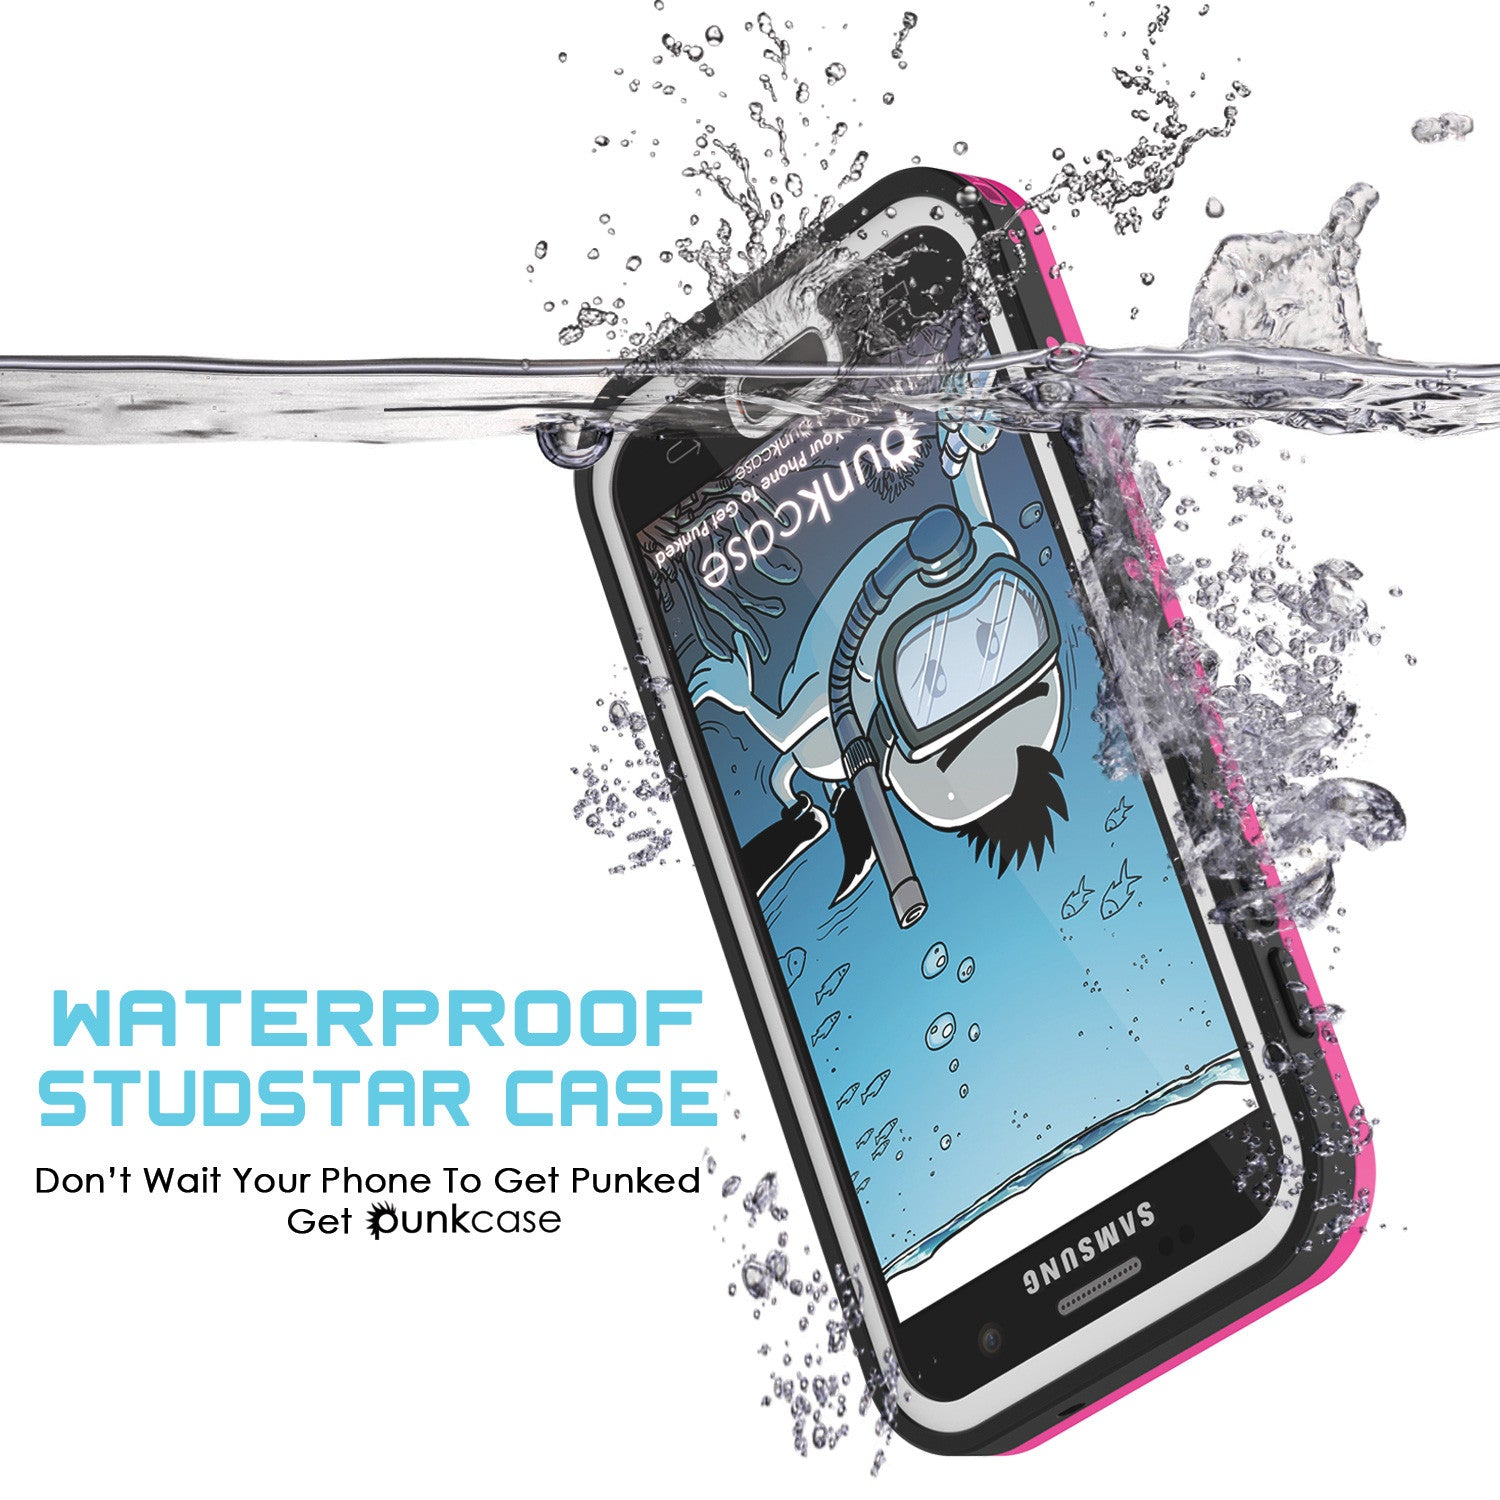 Galaxy S7 Waterproof Case PunkCase StudStar Pink Thin 6.6ft Underwater IP68 Shock/Dirt/Snow Proof